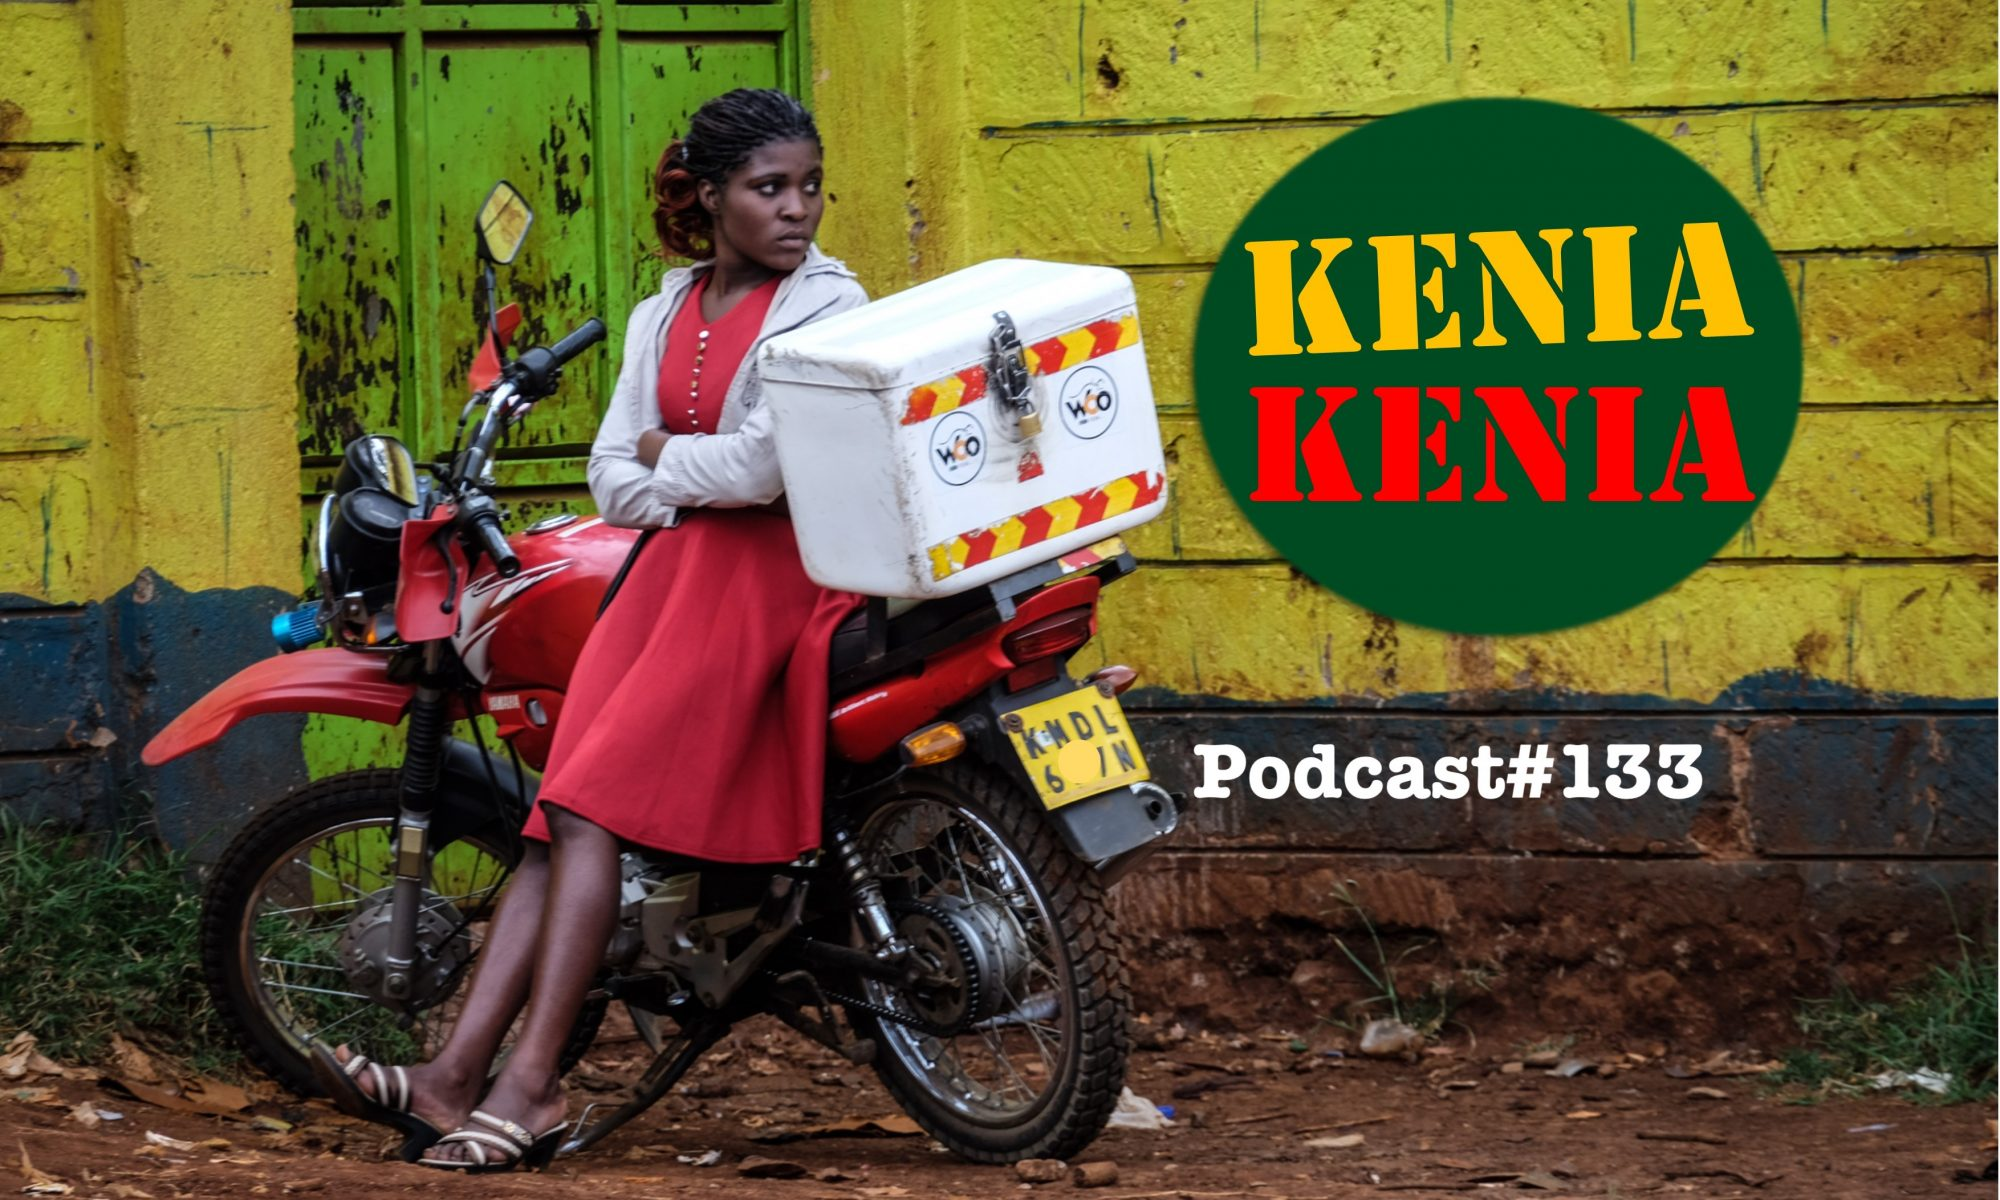 Kenia Kenia Podcast